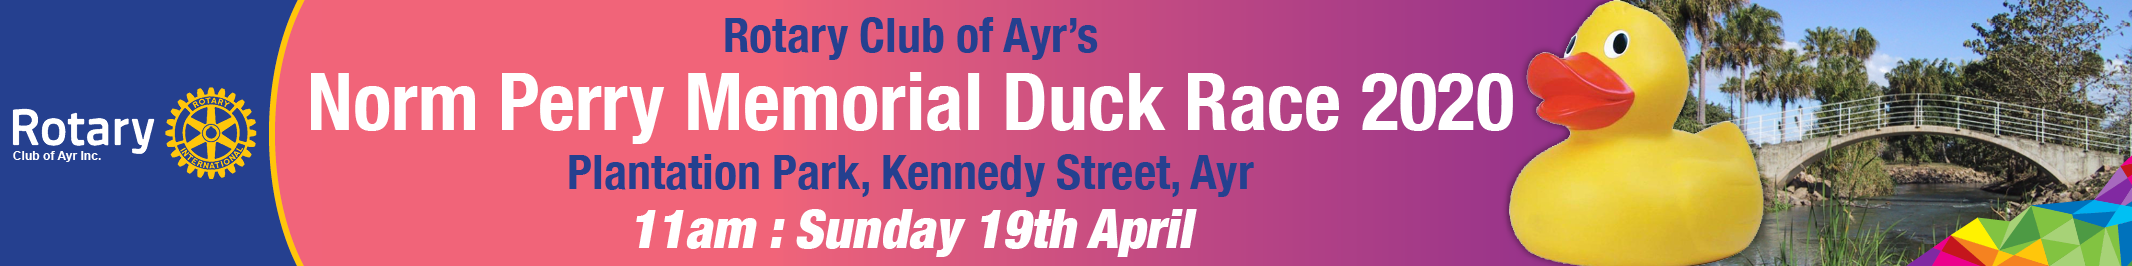 Ayr Duck Race 2020 Rotary